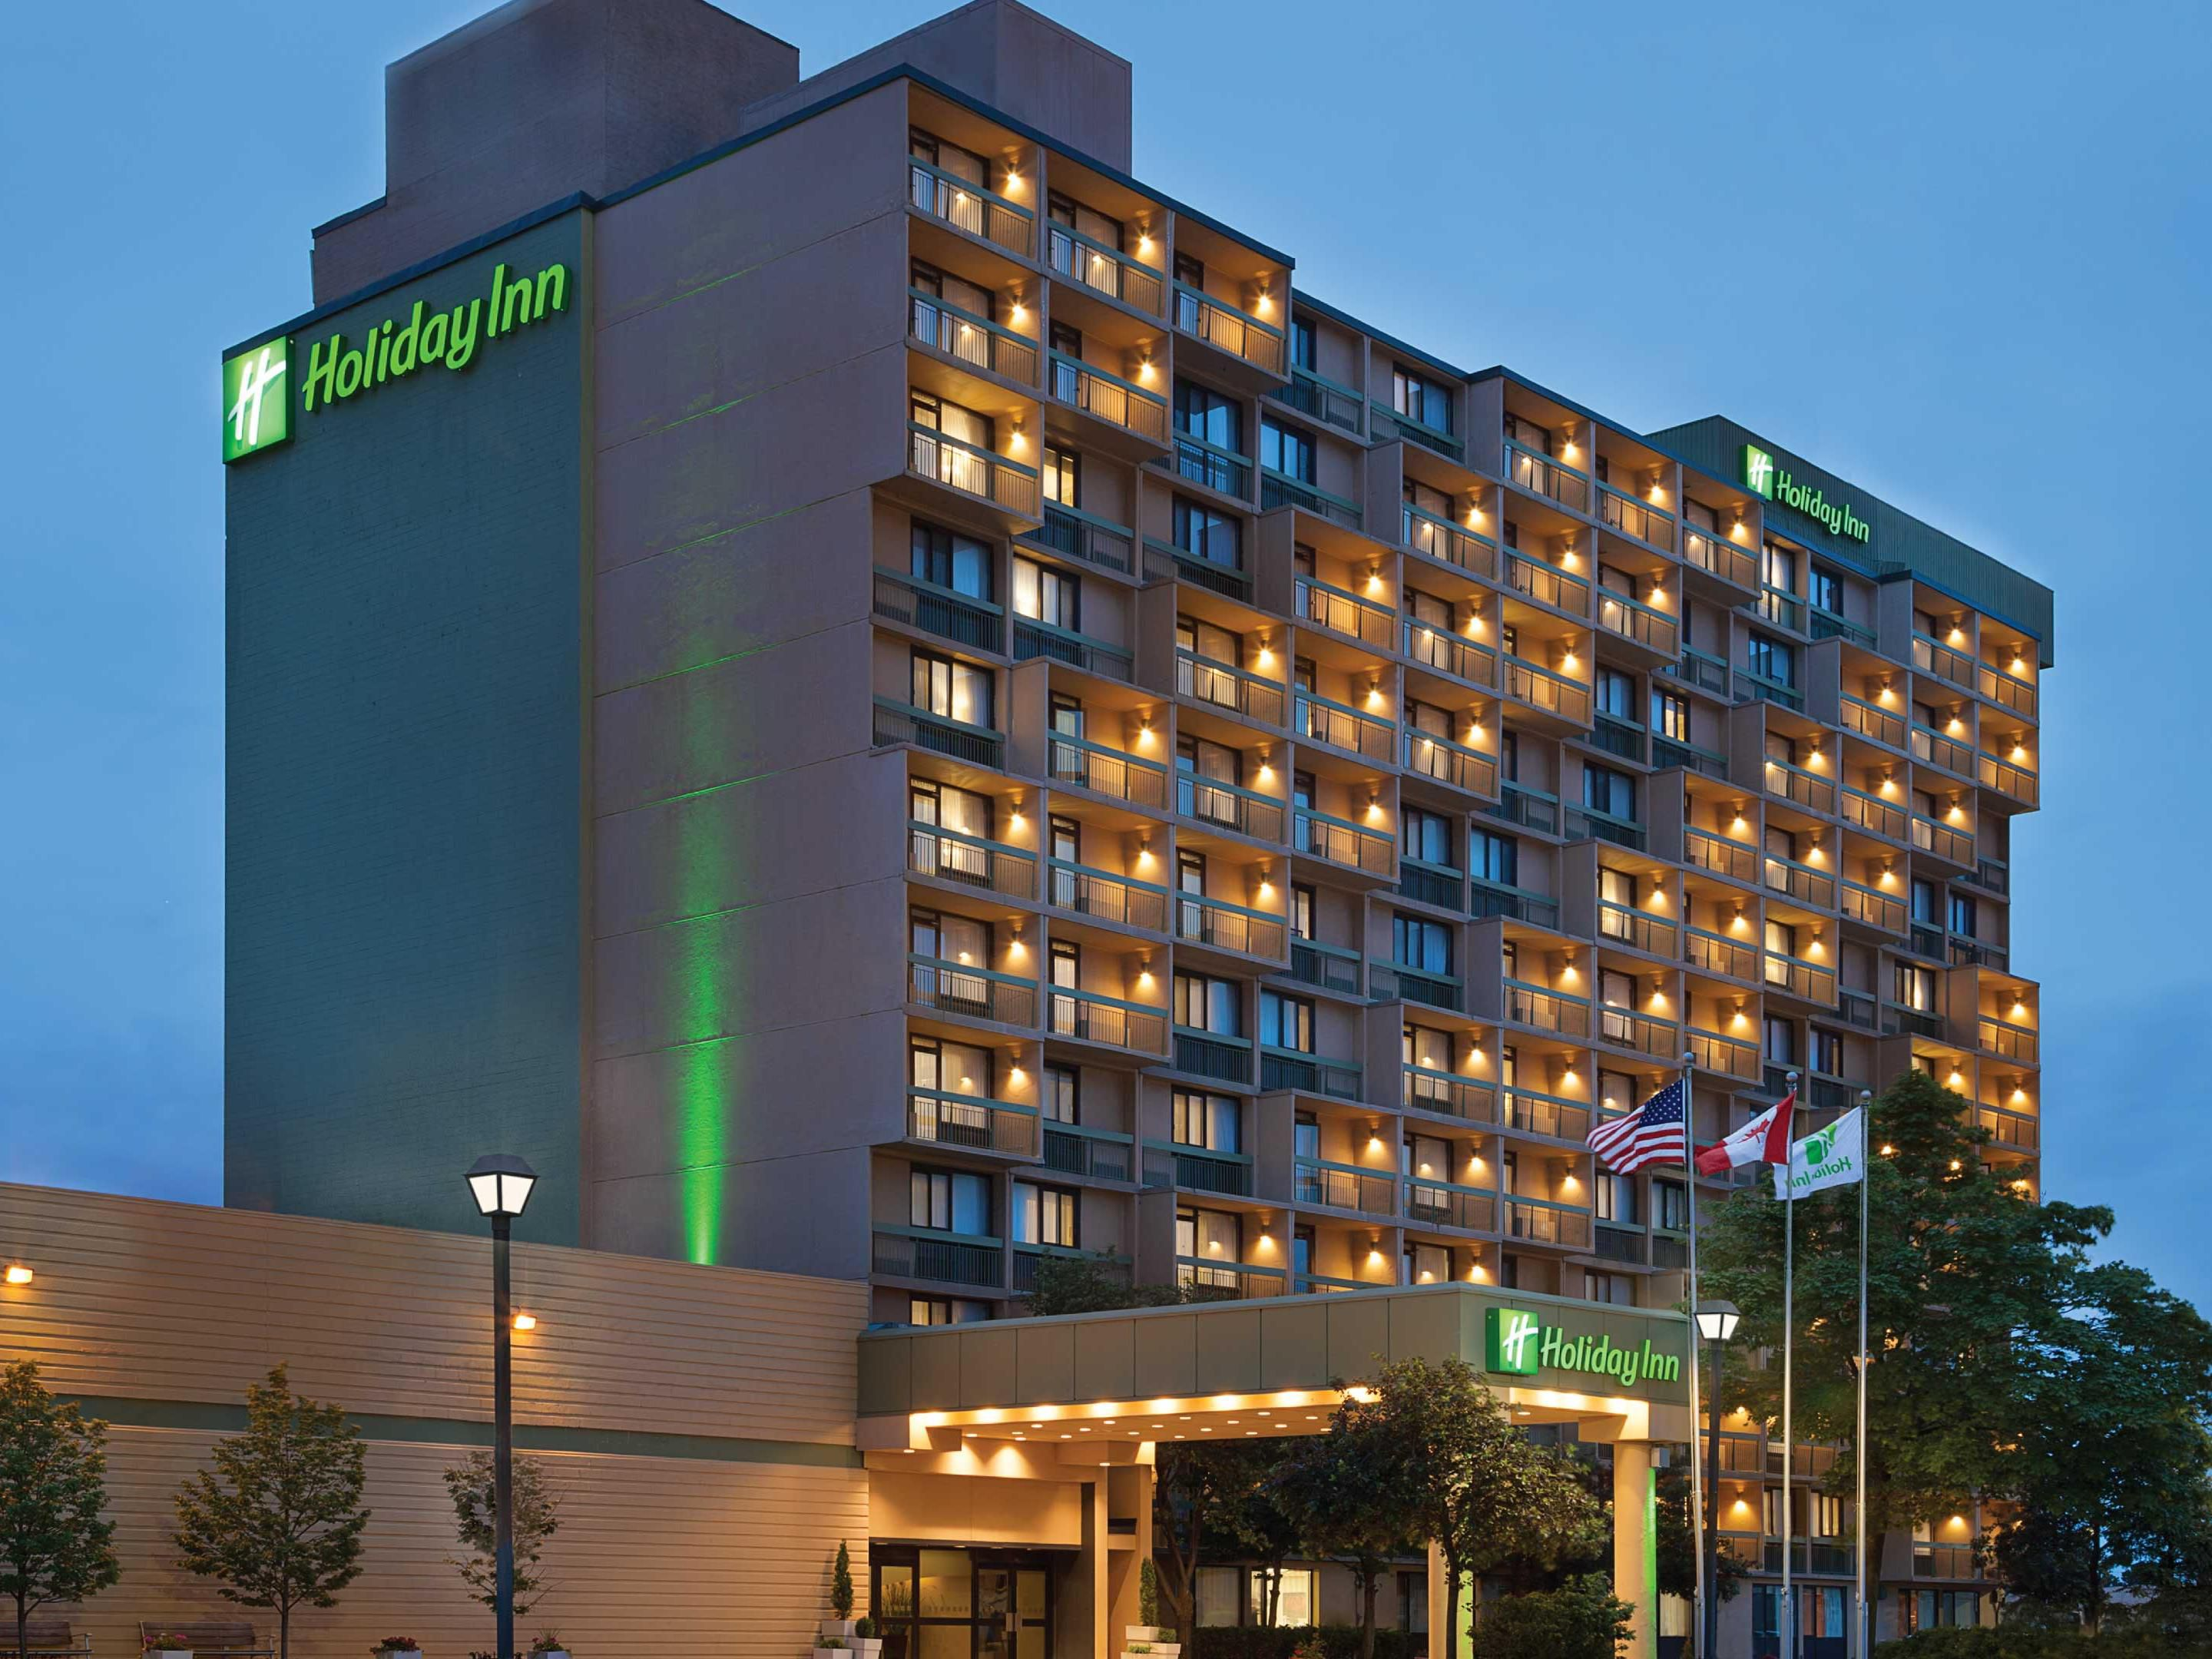 Newly renovated Toronto hotel next to Yorkdale Shopping Centre